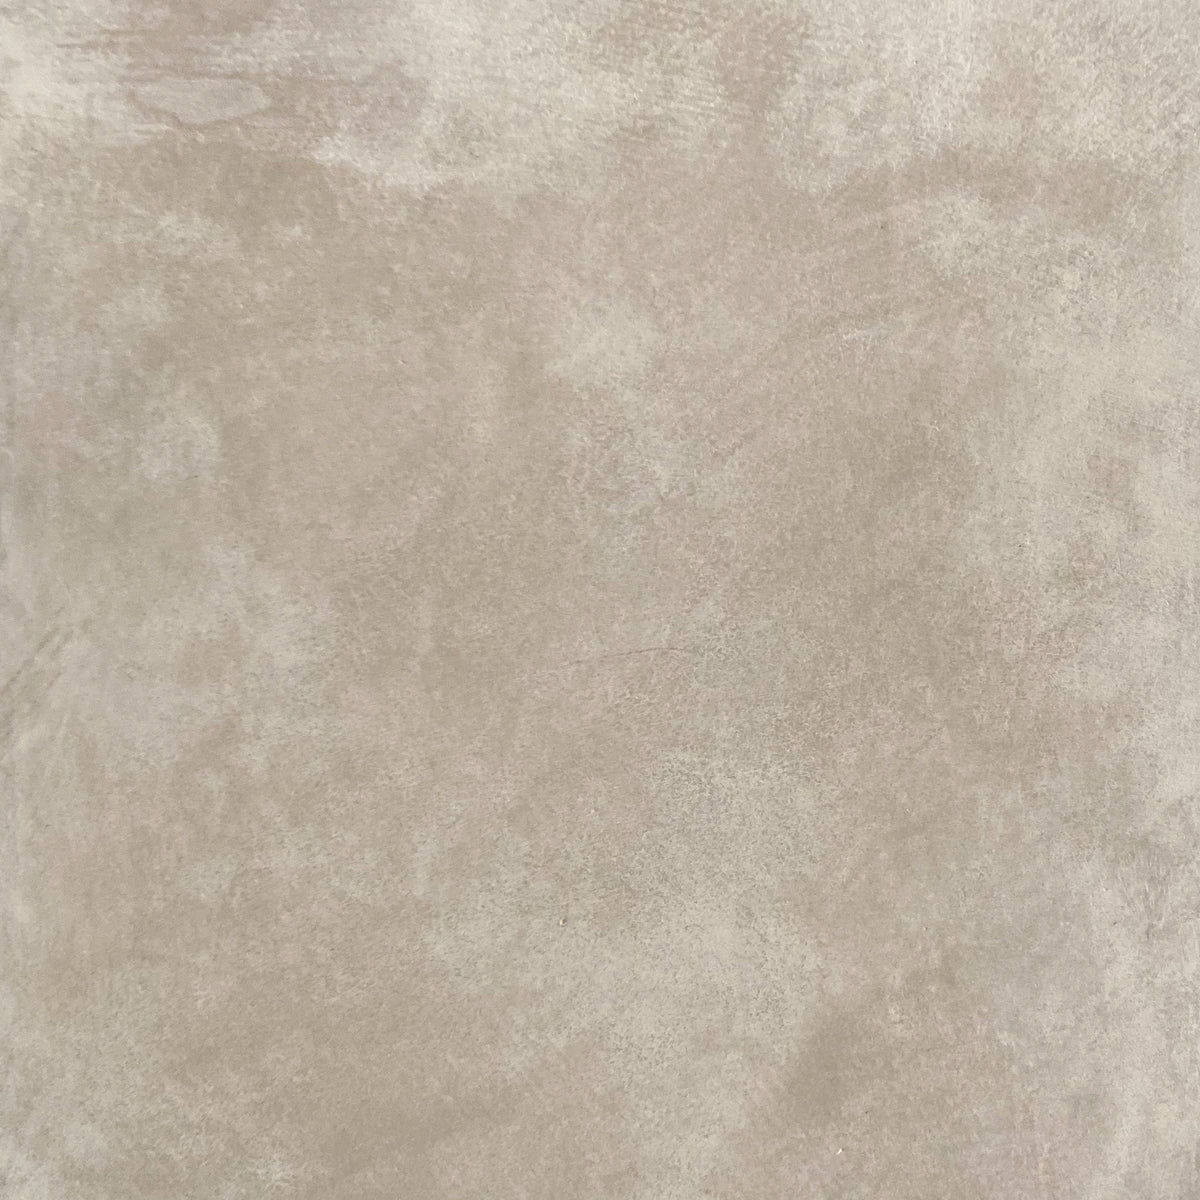 JH Wall Paints | Mineral Metallic Stain 1002